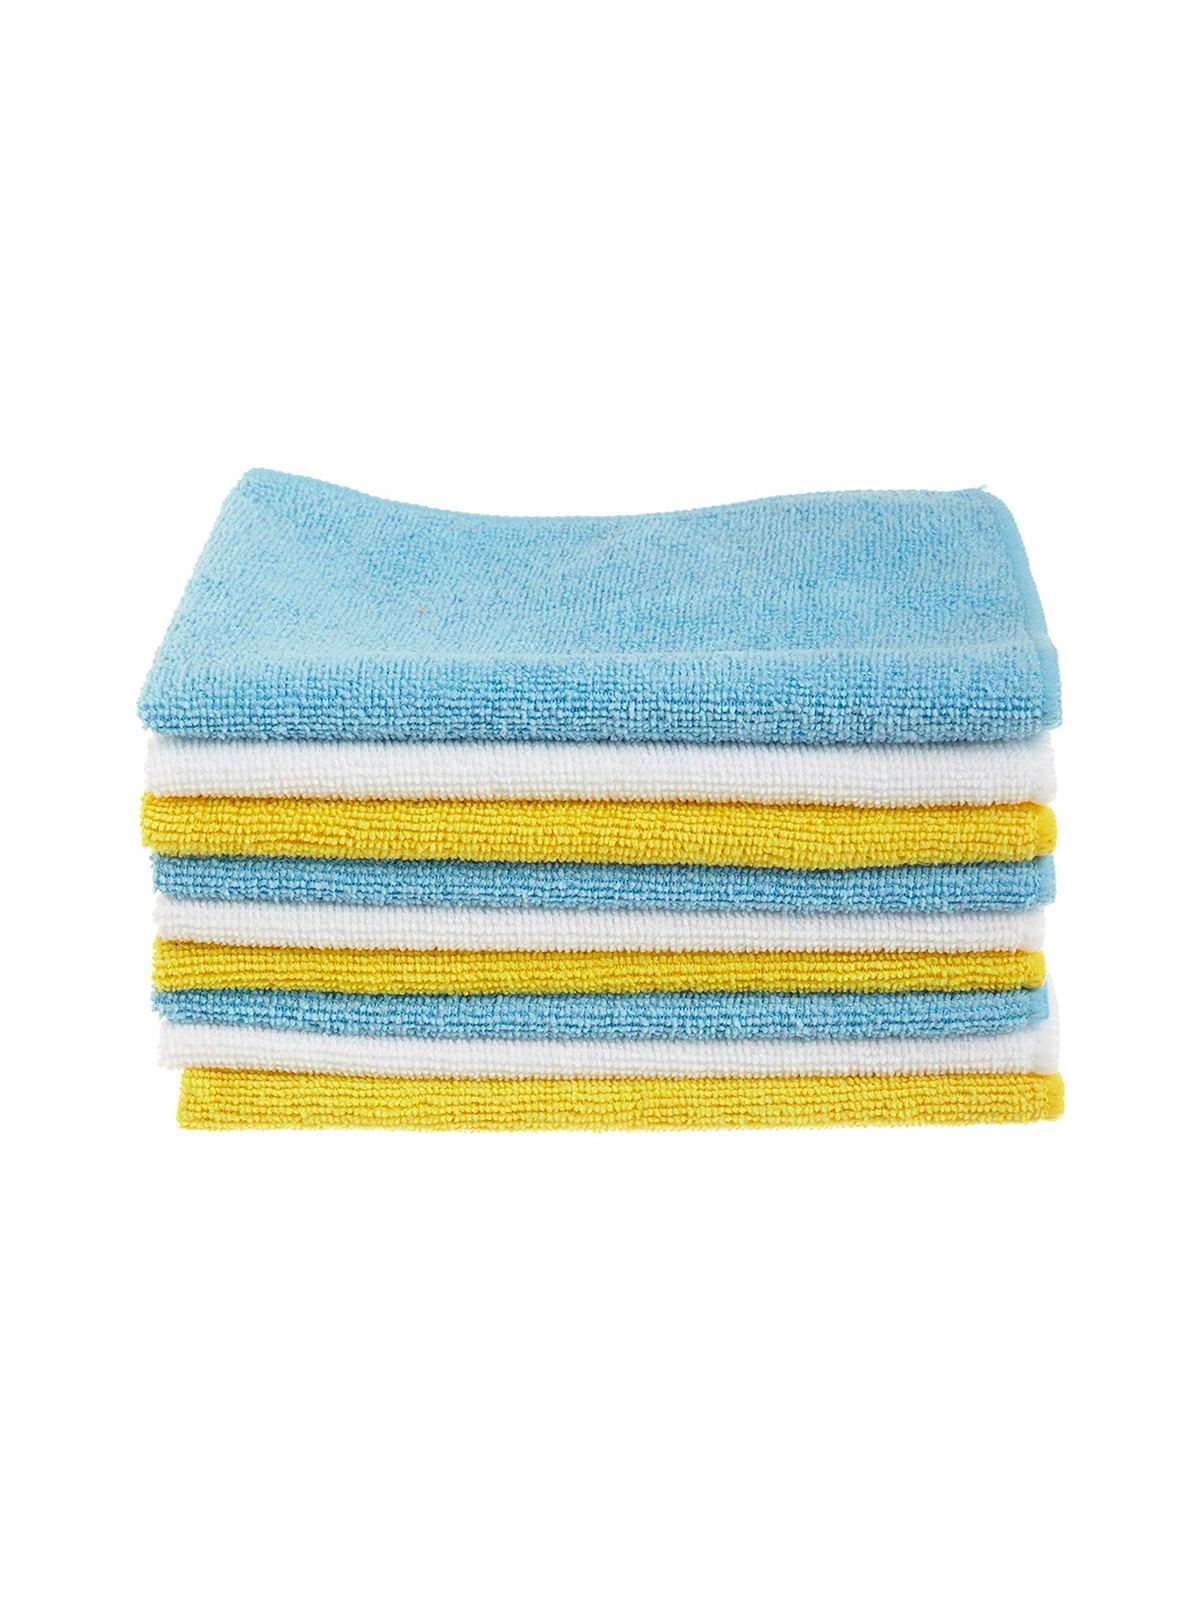 Blue and Yellow Microfiber Cleaning Cloths